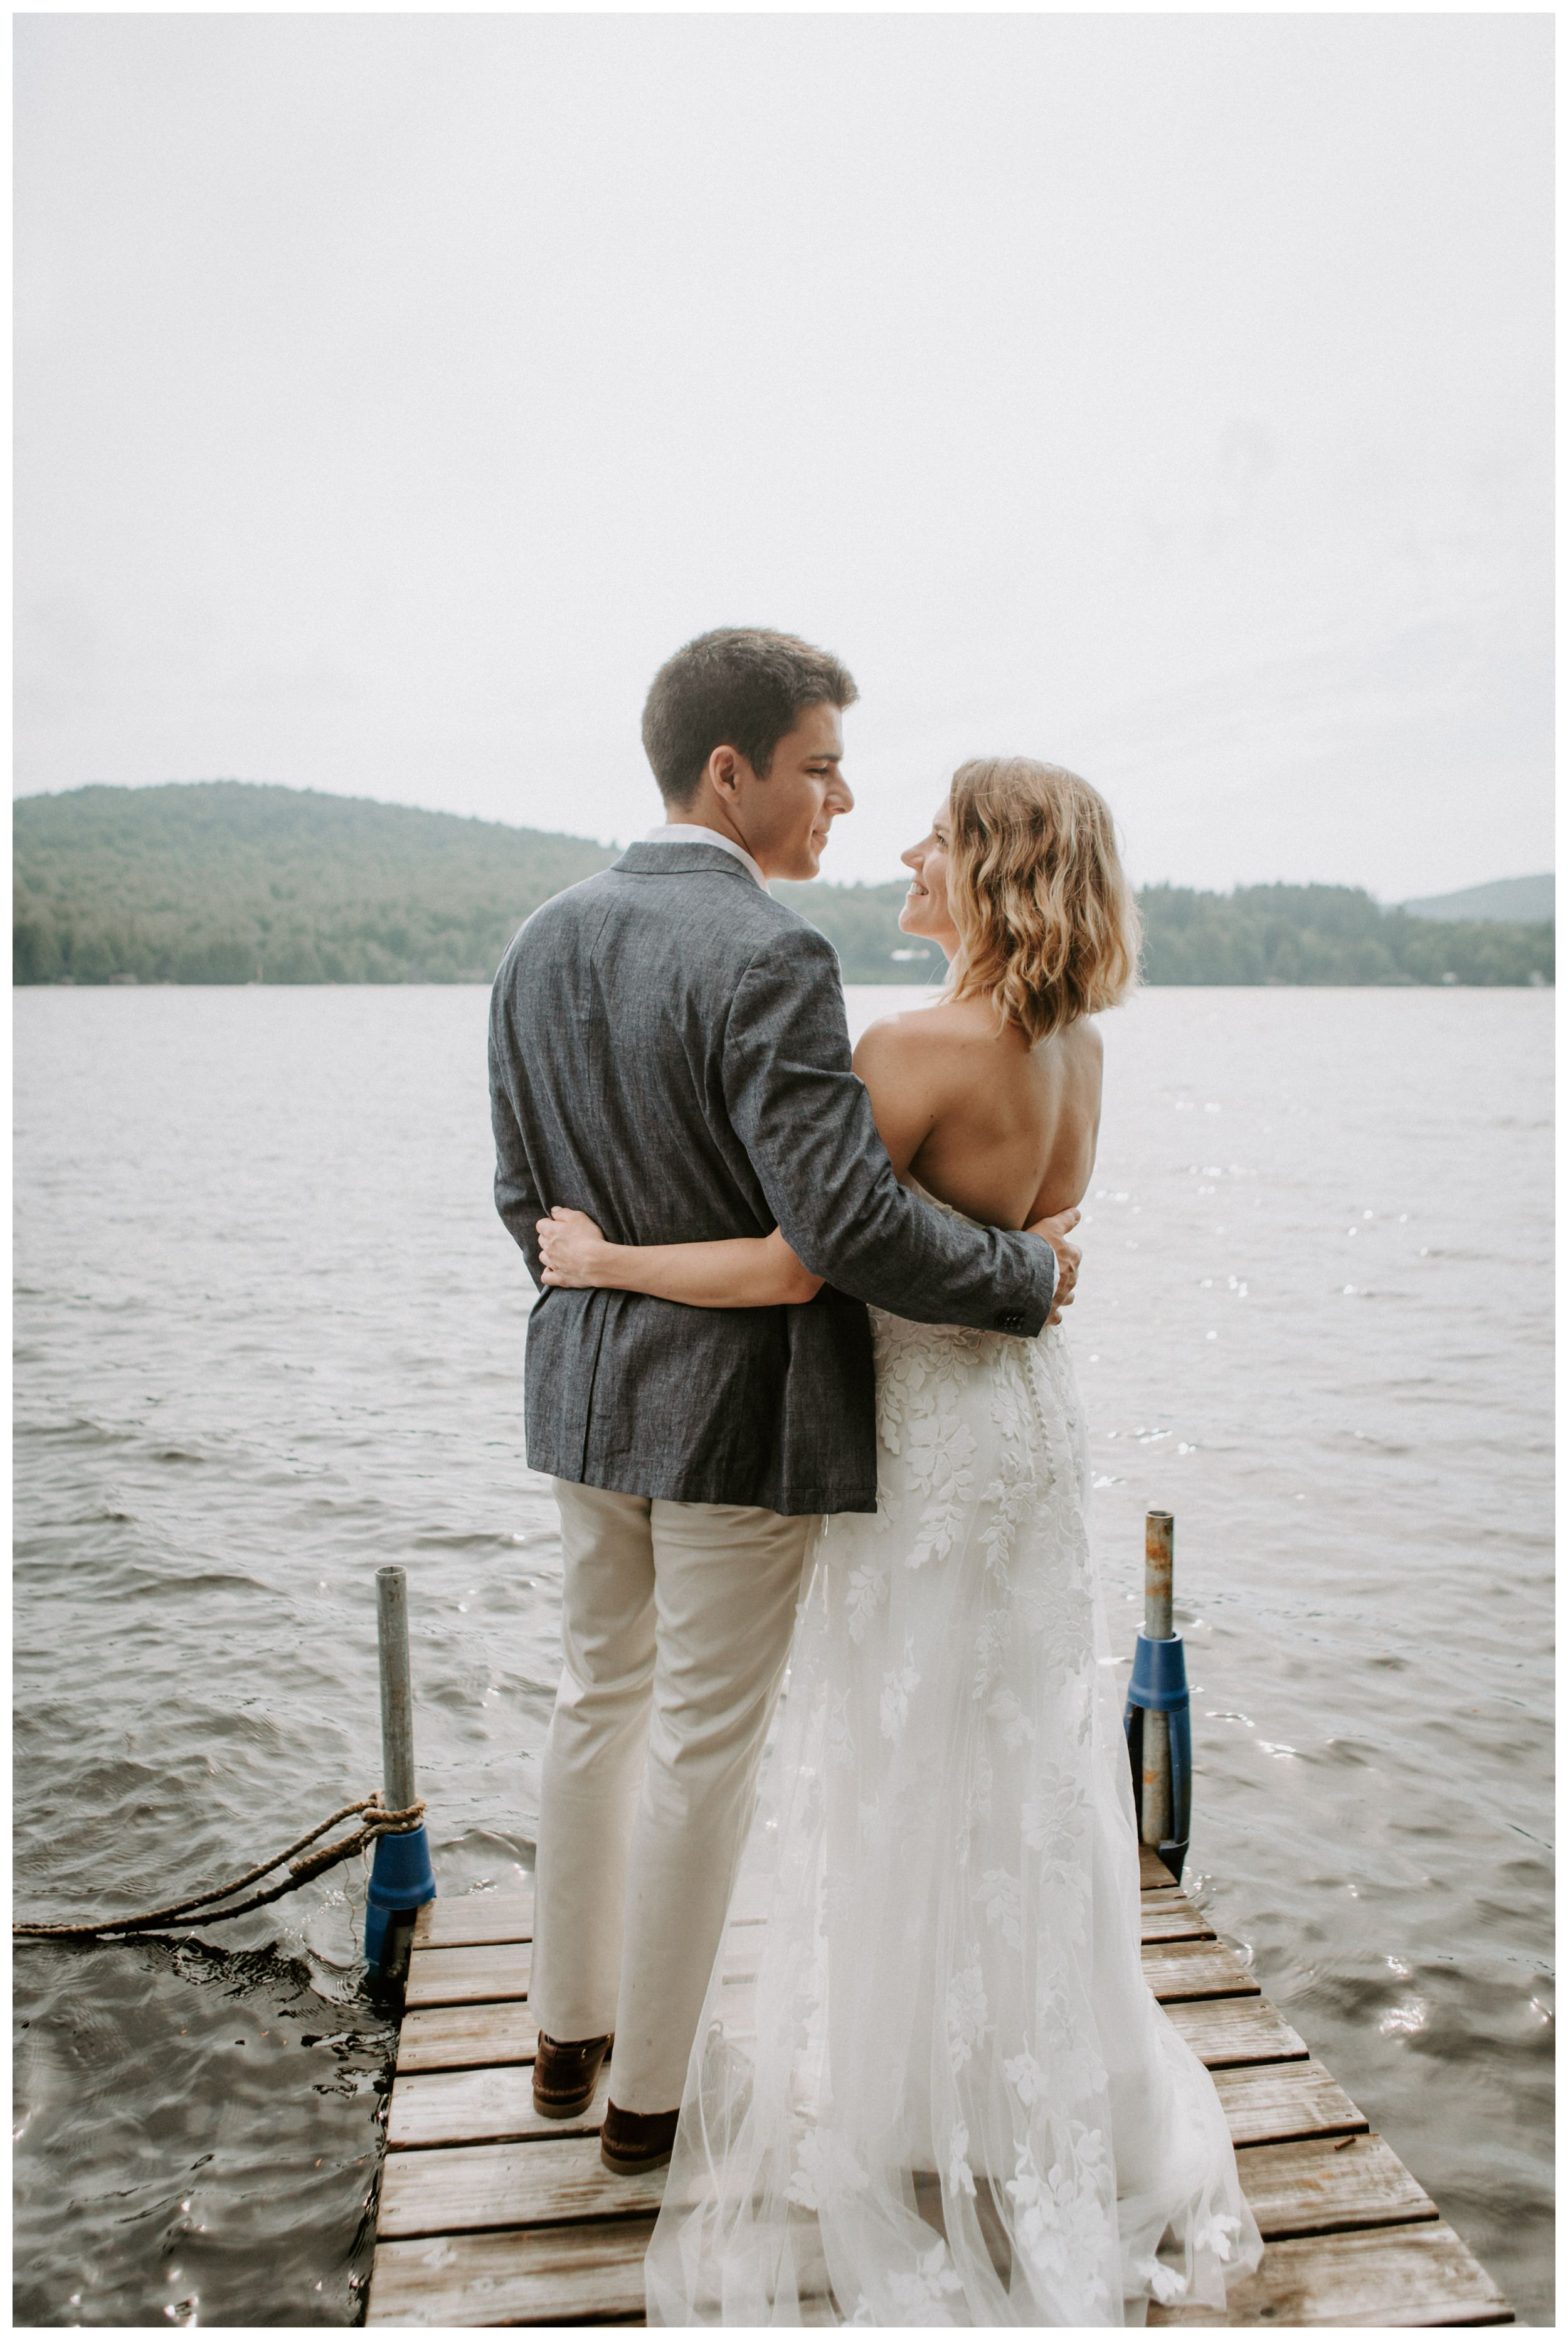 intimate-lakeside-wedding-adirondack-mountains44.jpg